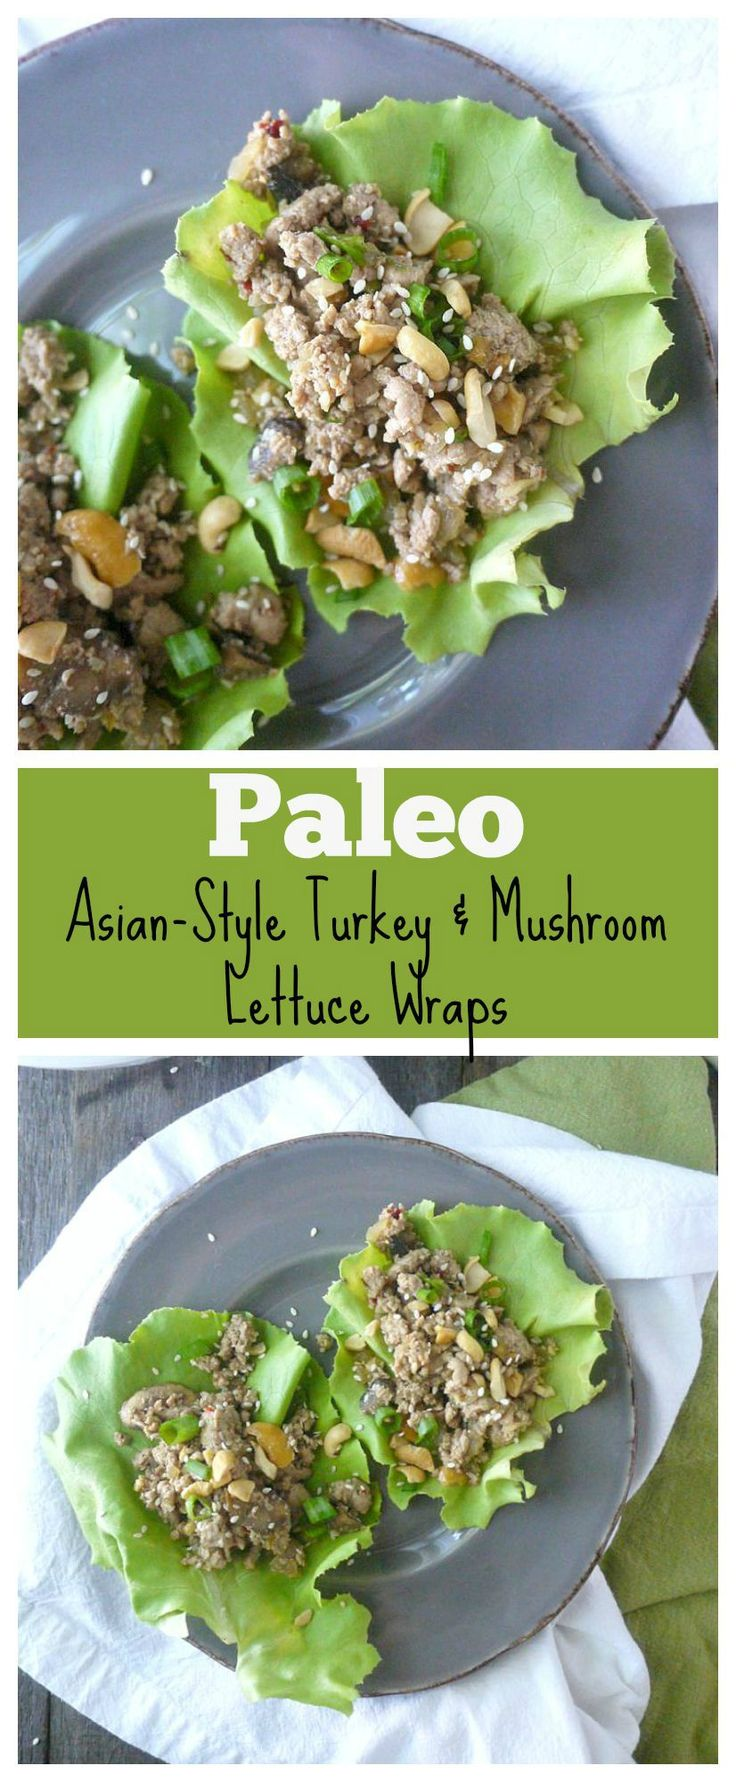 These delicious lettuce wraps are ready in just 30 minutes and they're #paleo, #glutenfree and #dairyfree!